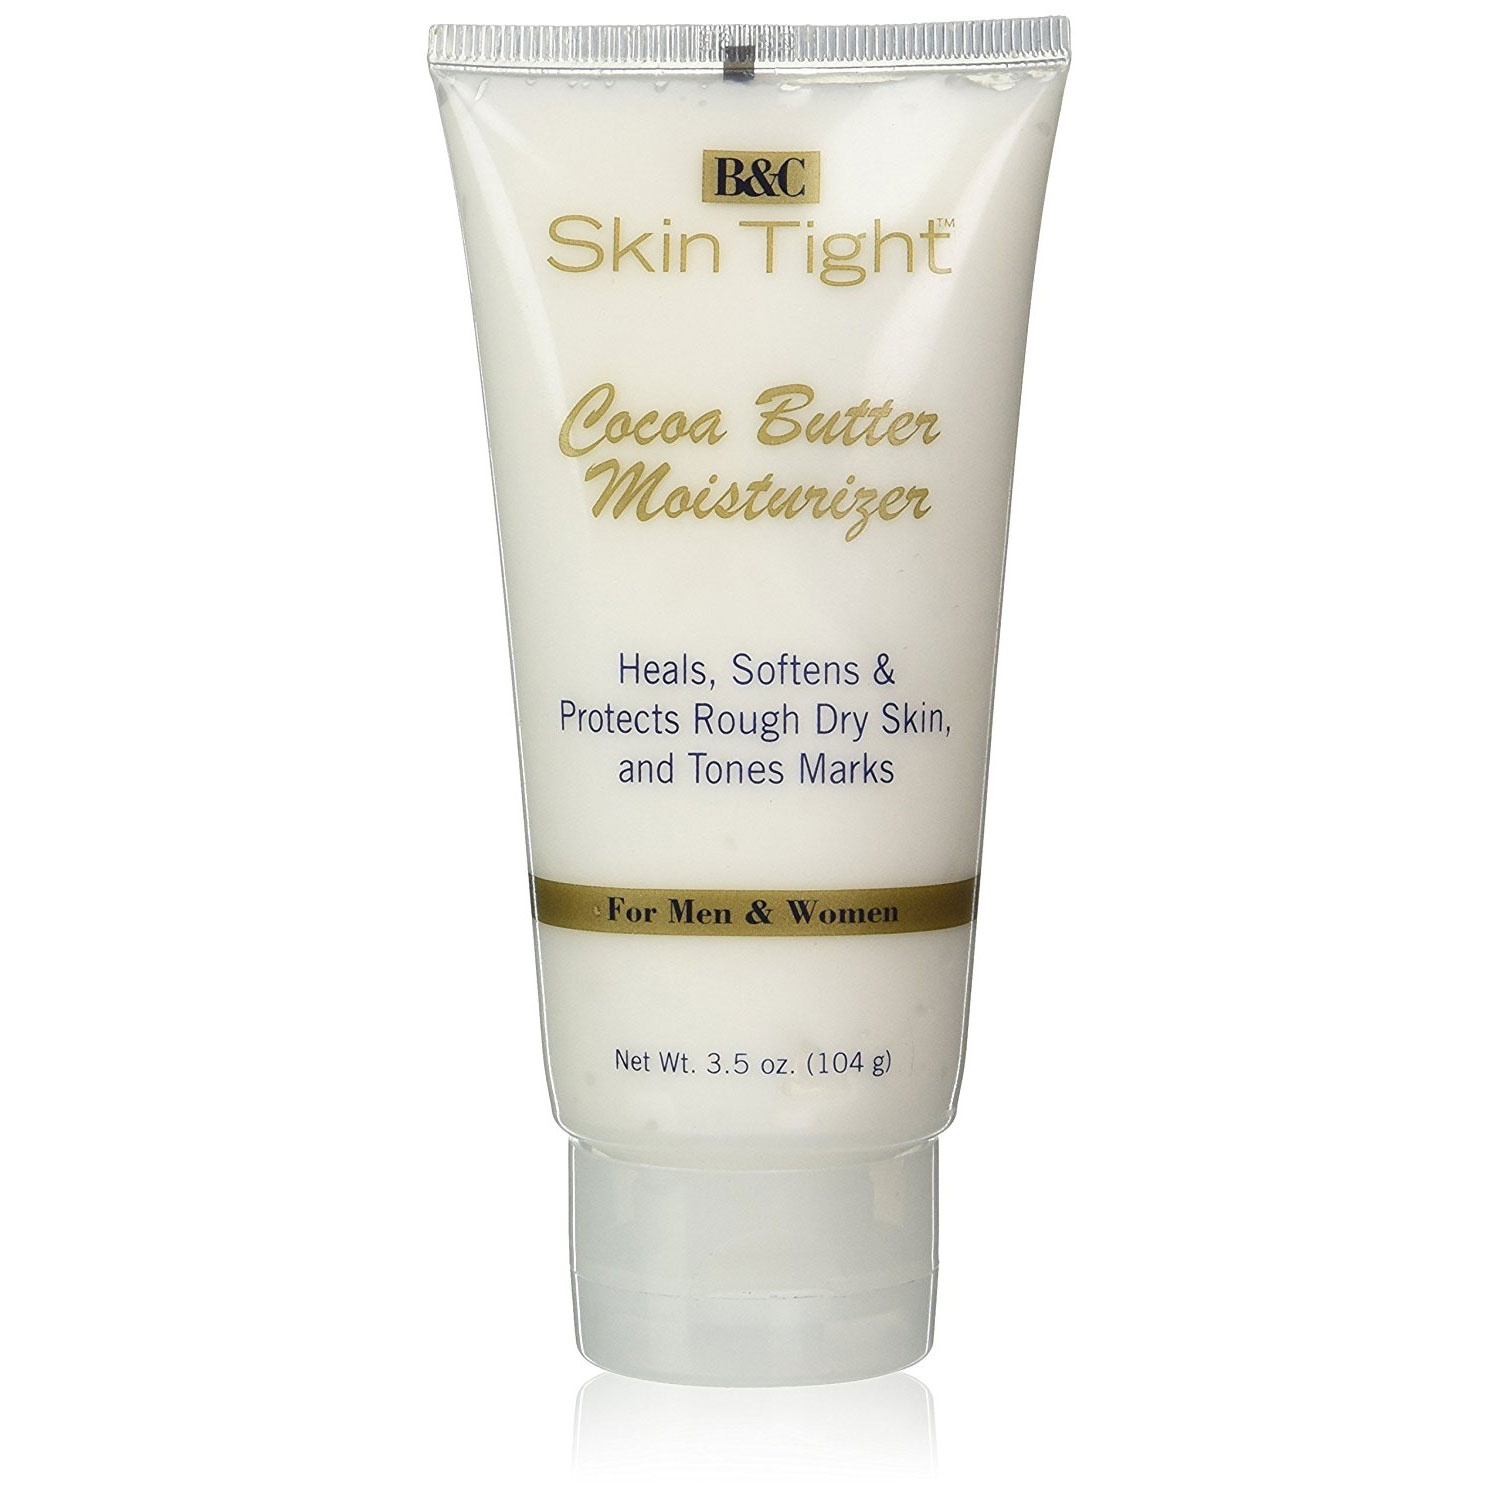 Image of B&C Skin Tight Cocoa Butter Moisturizer - 3.5oz